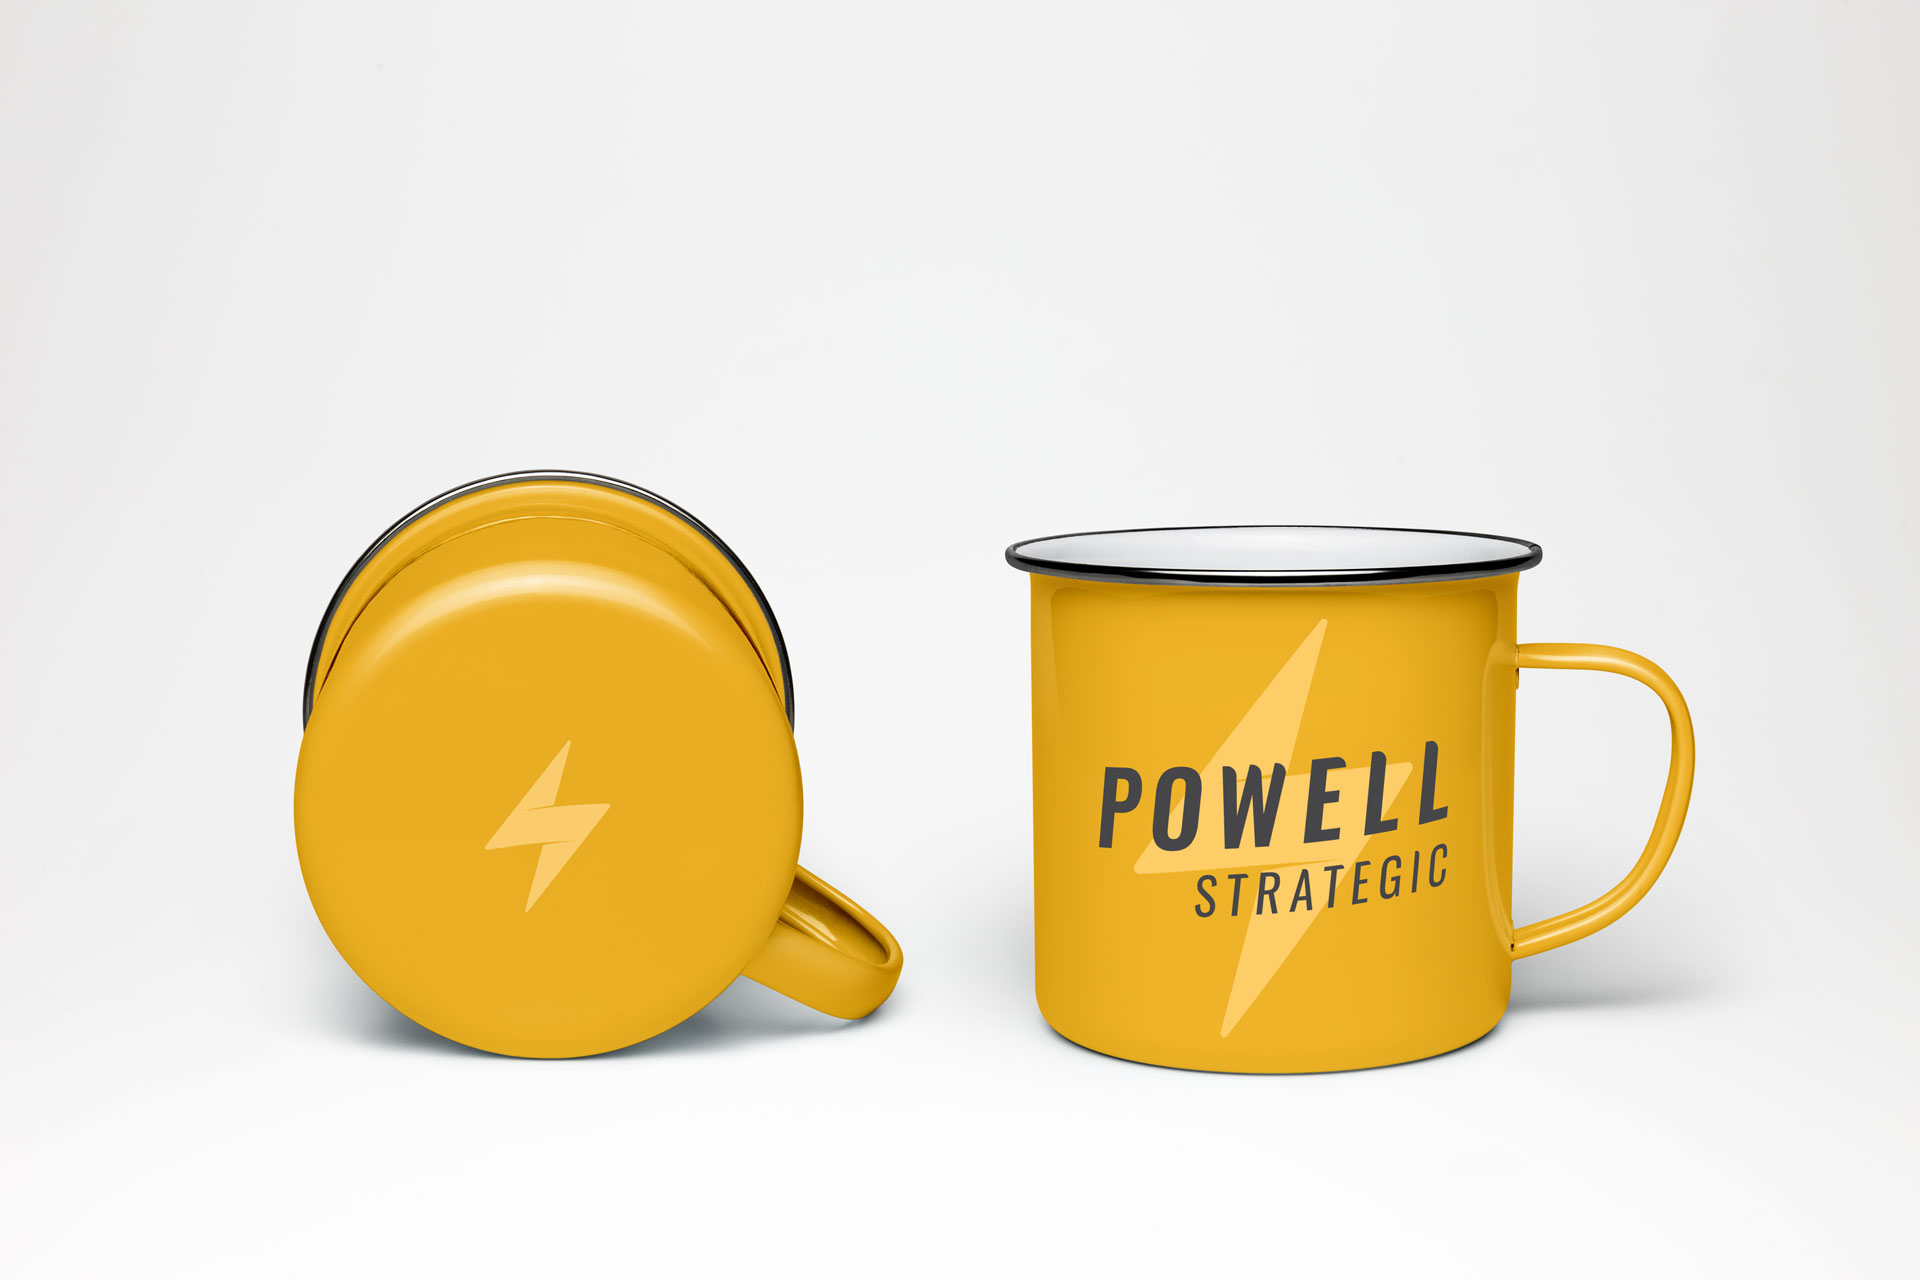 Powell Strategic Mug